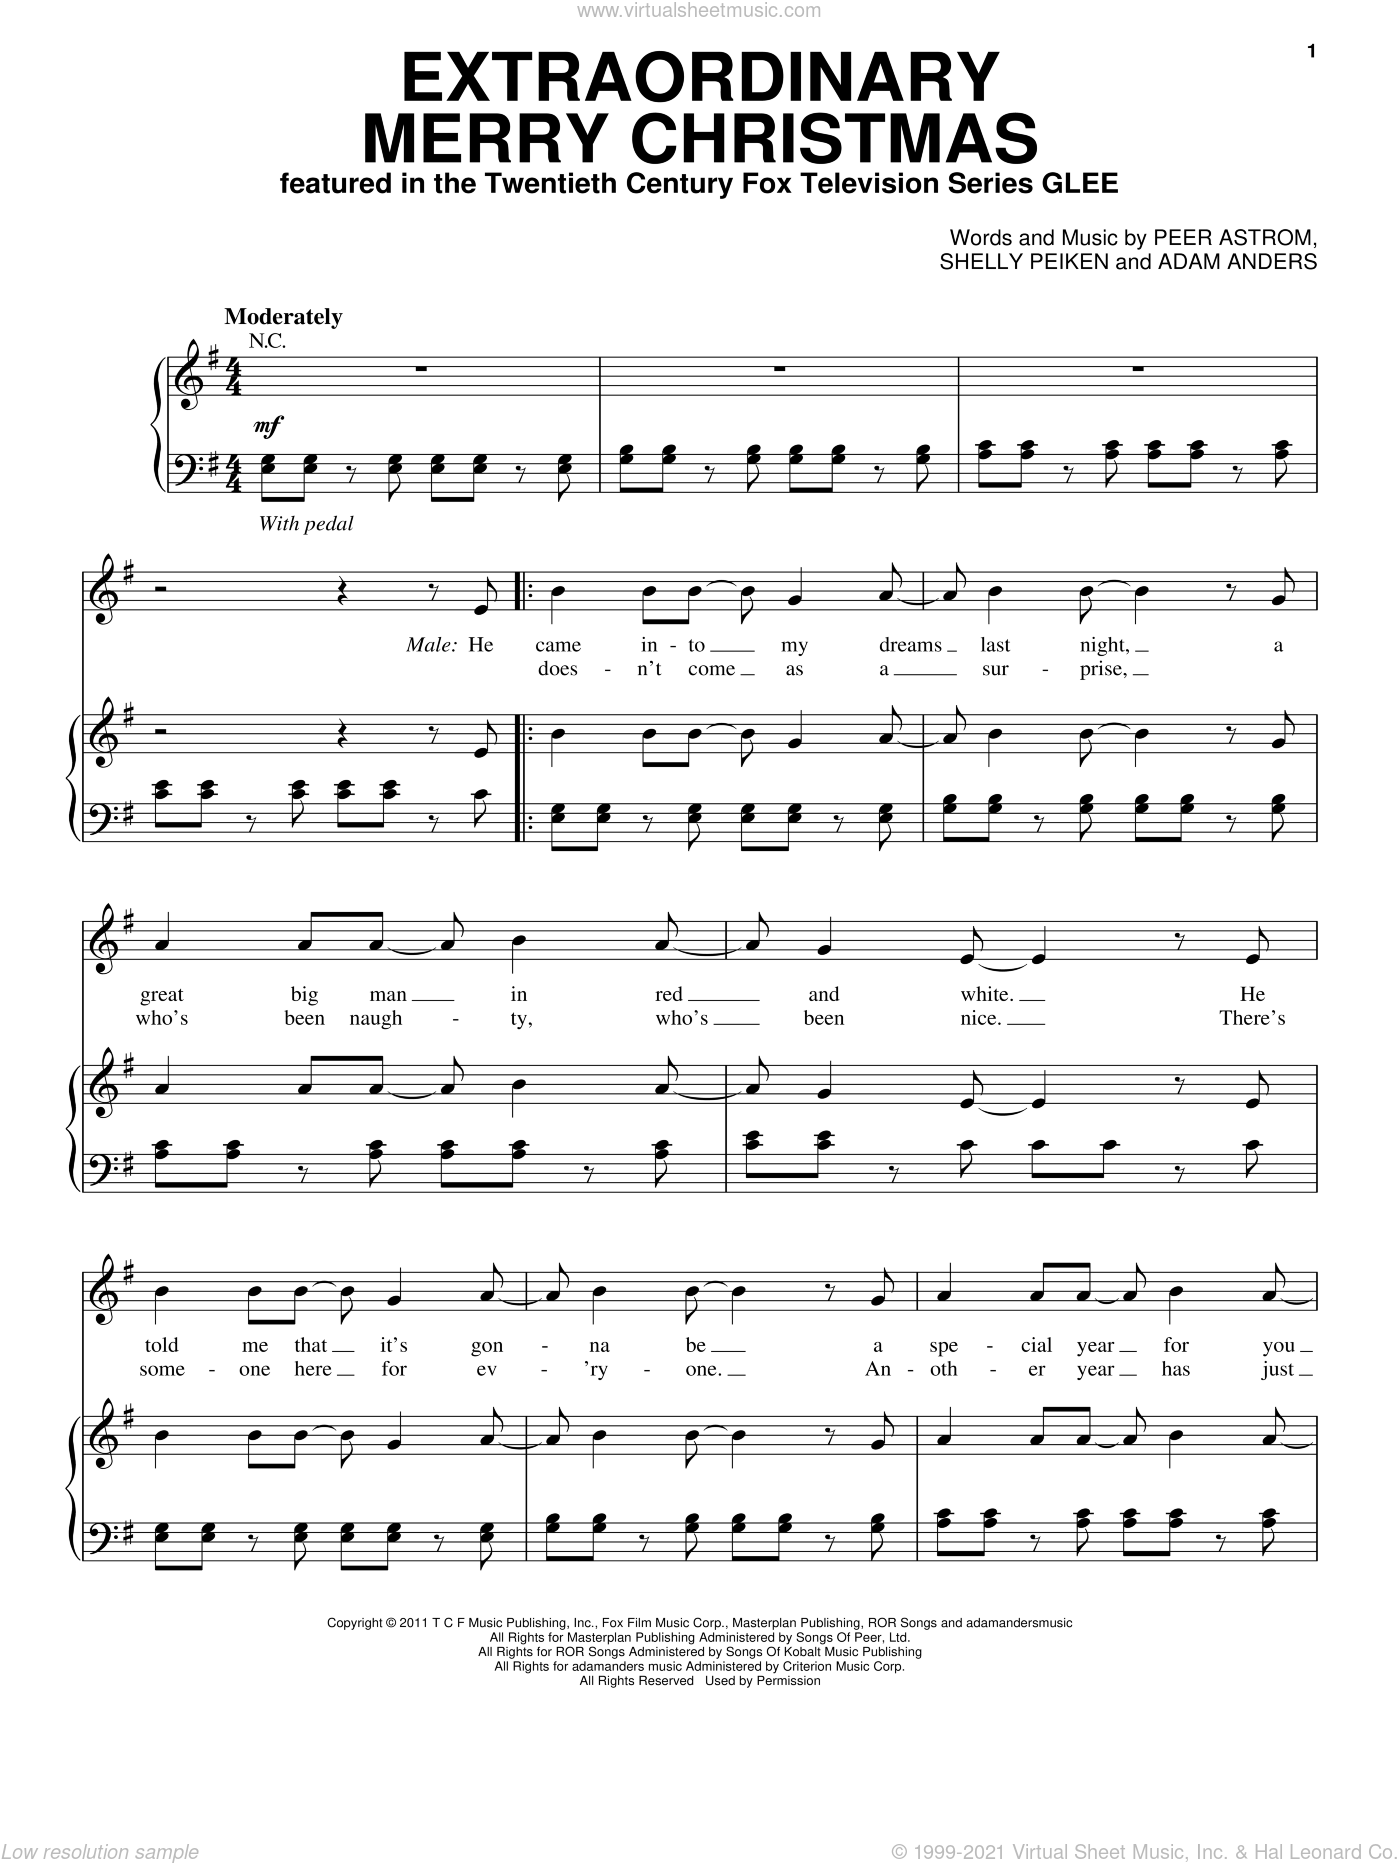 Extraordinary Merry Christmas sheet music for voice, piano or guitar by Glee Cast and Peer Astrom, intermediate